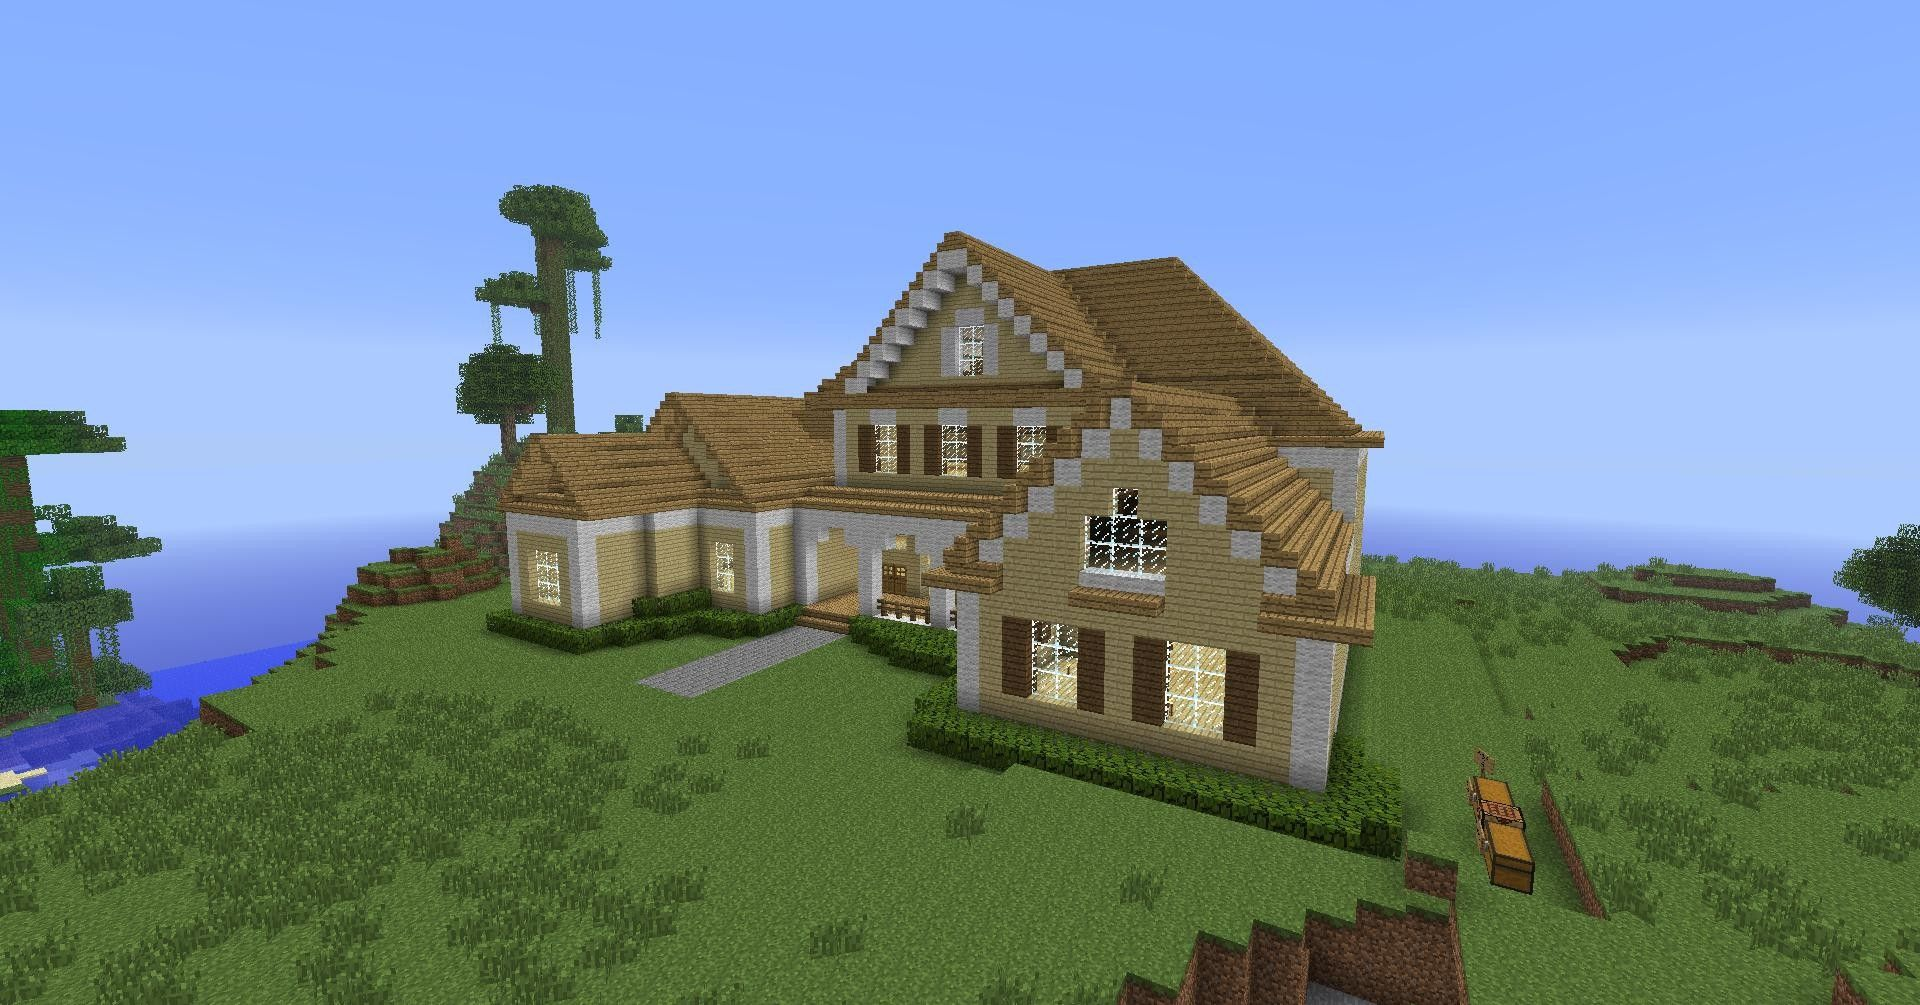 Pin By Iris On Minecraft Modern Minecraft Houses Minecraft Roof Minecraft Houses Blueprints